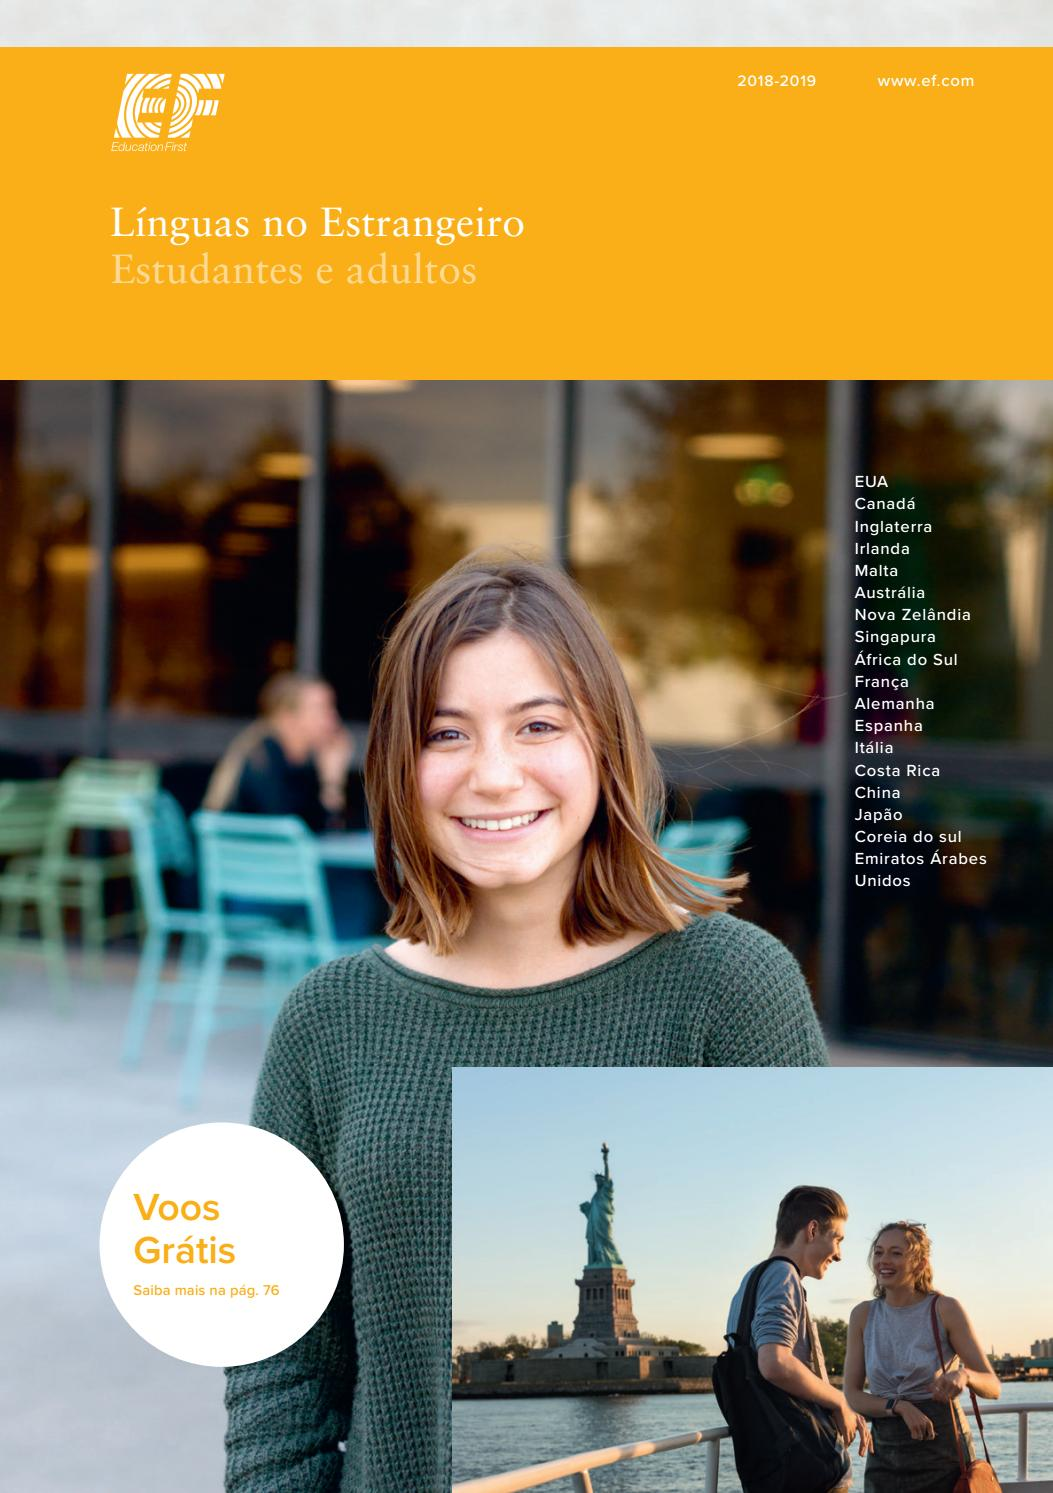 ed8081cce6 PT ILSU D1 2018 by EF Education First - issuu